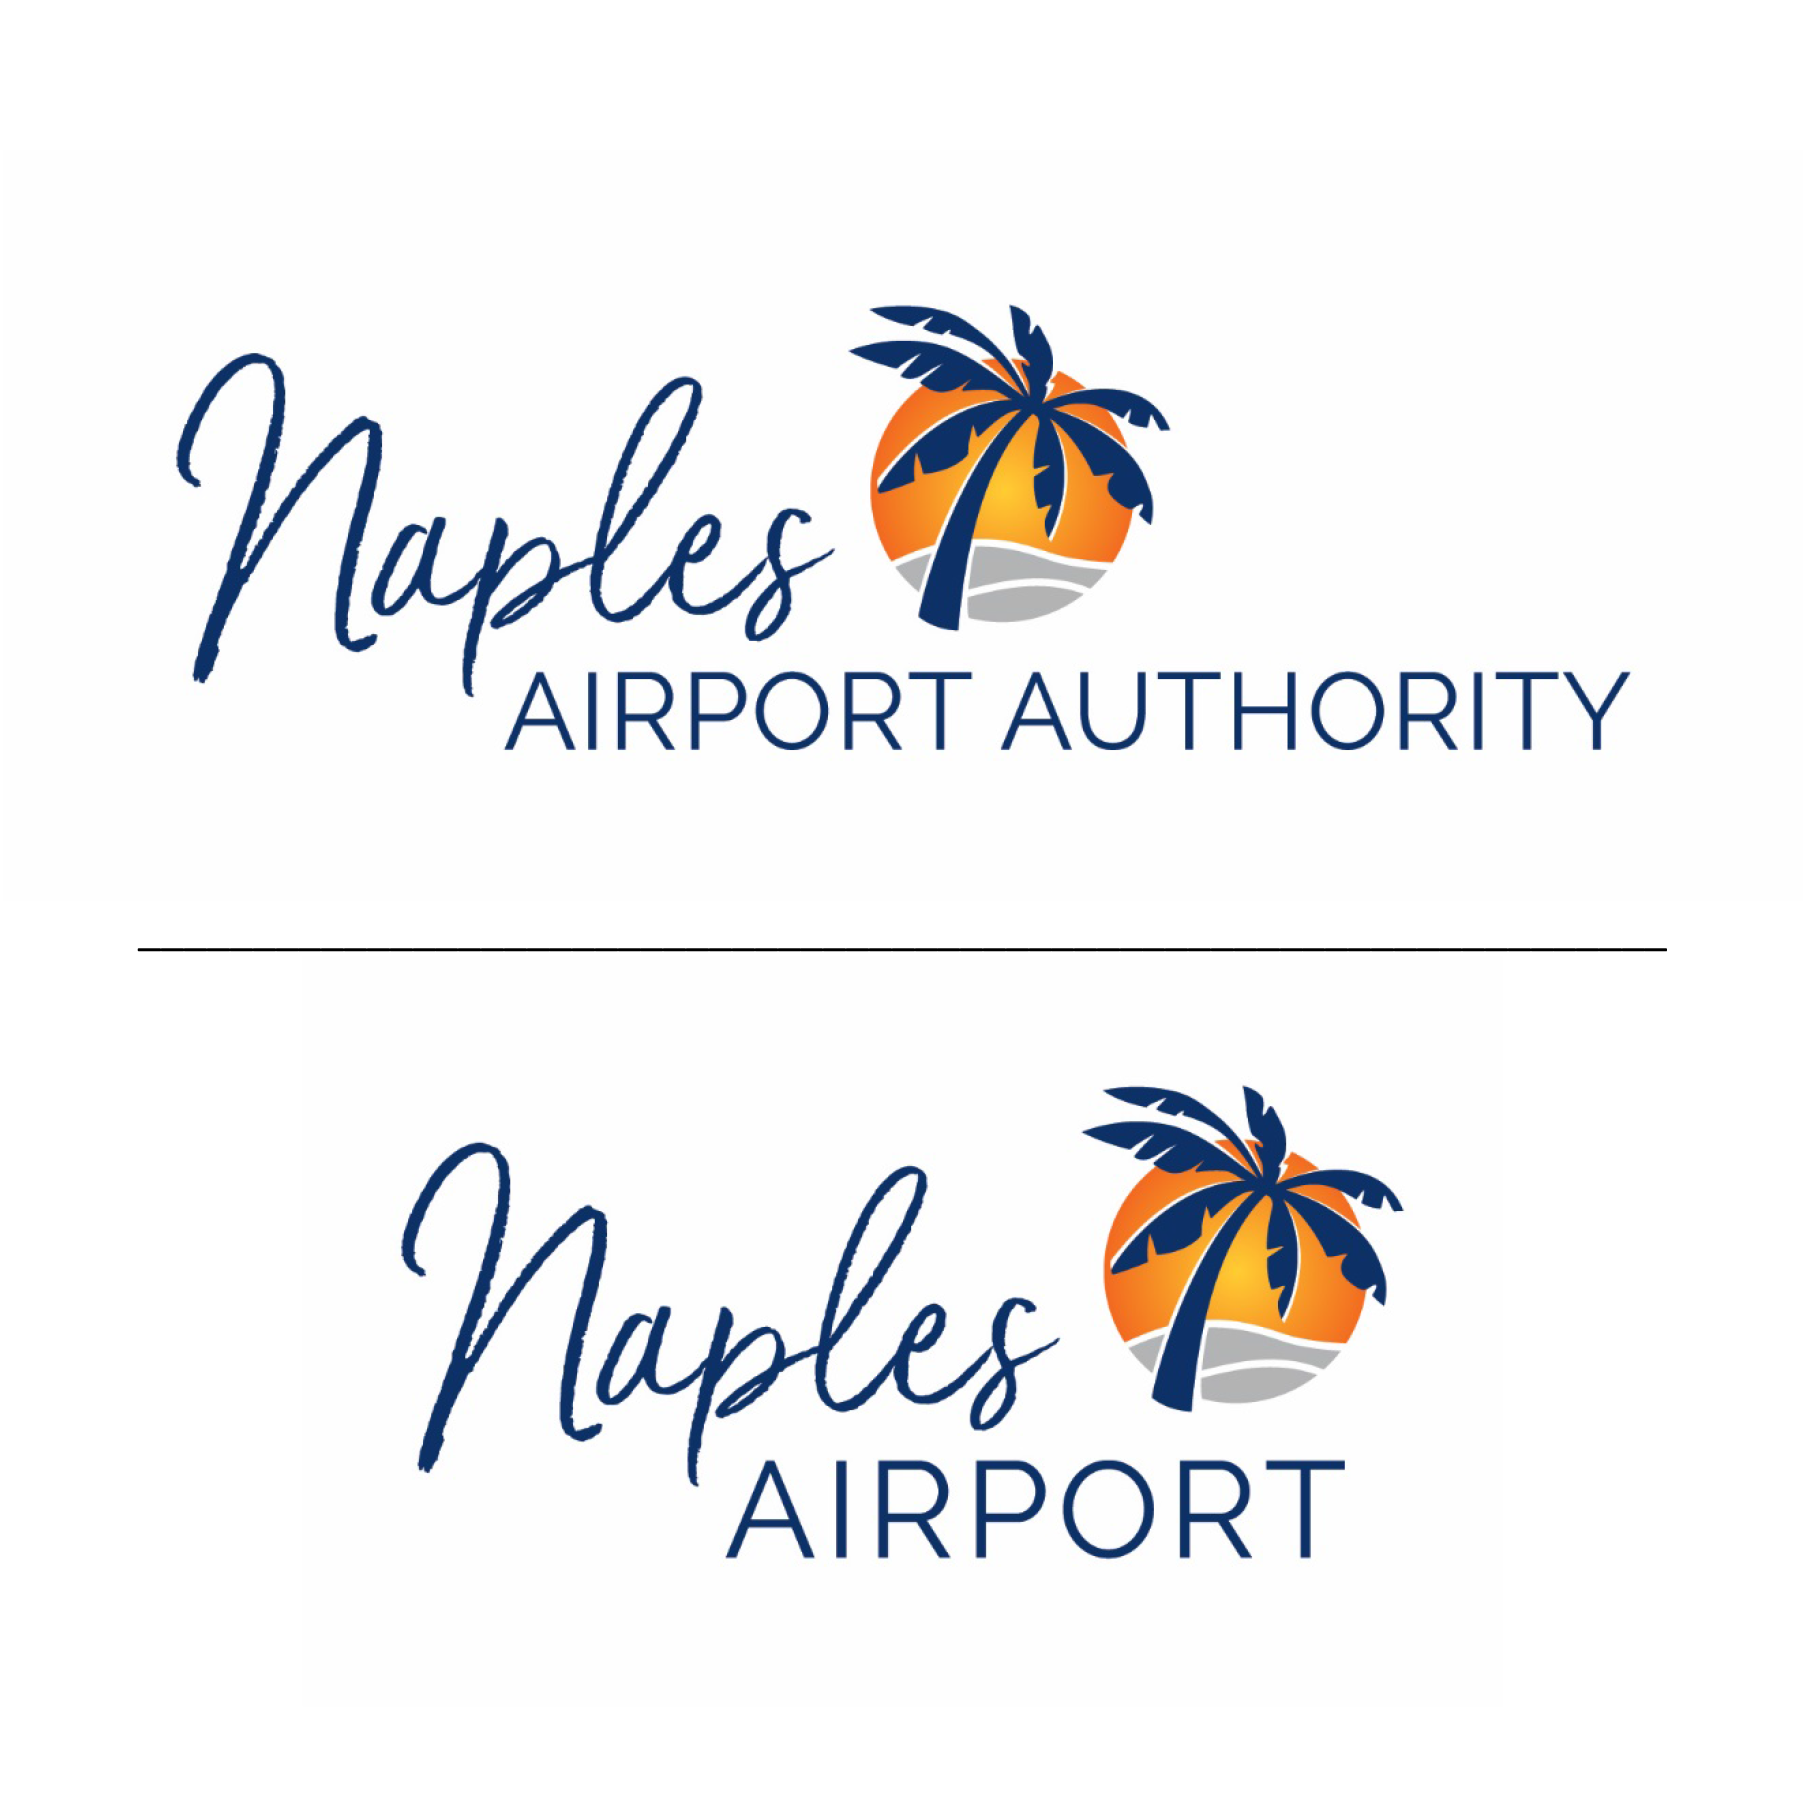 Naples Airport Authority / Municipal Airport